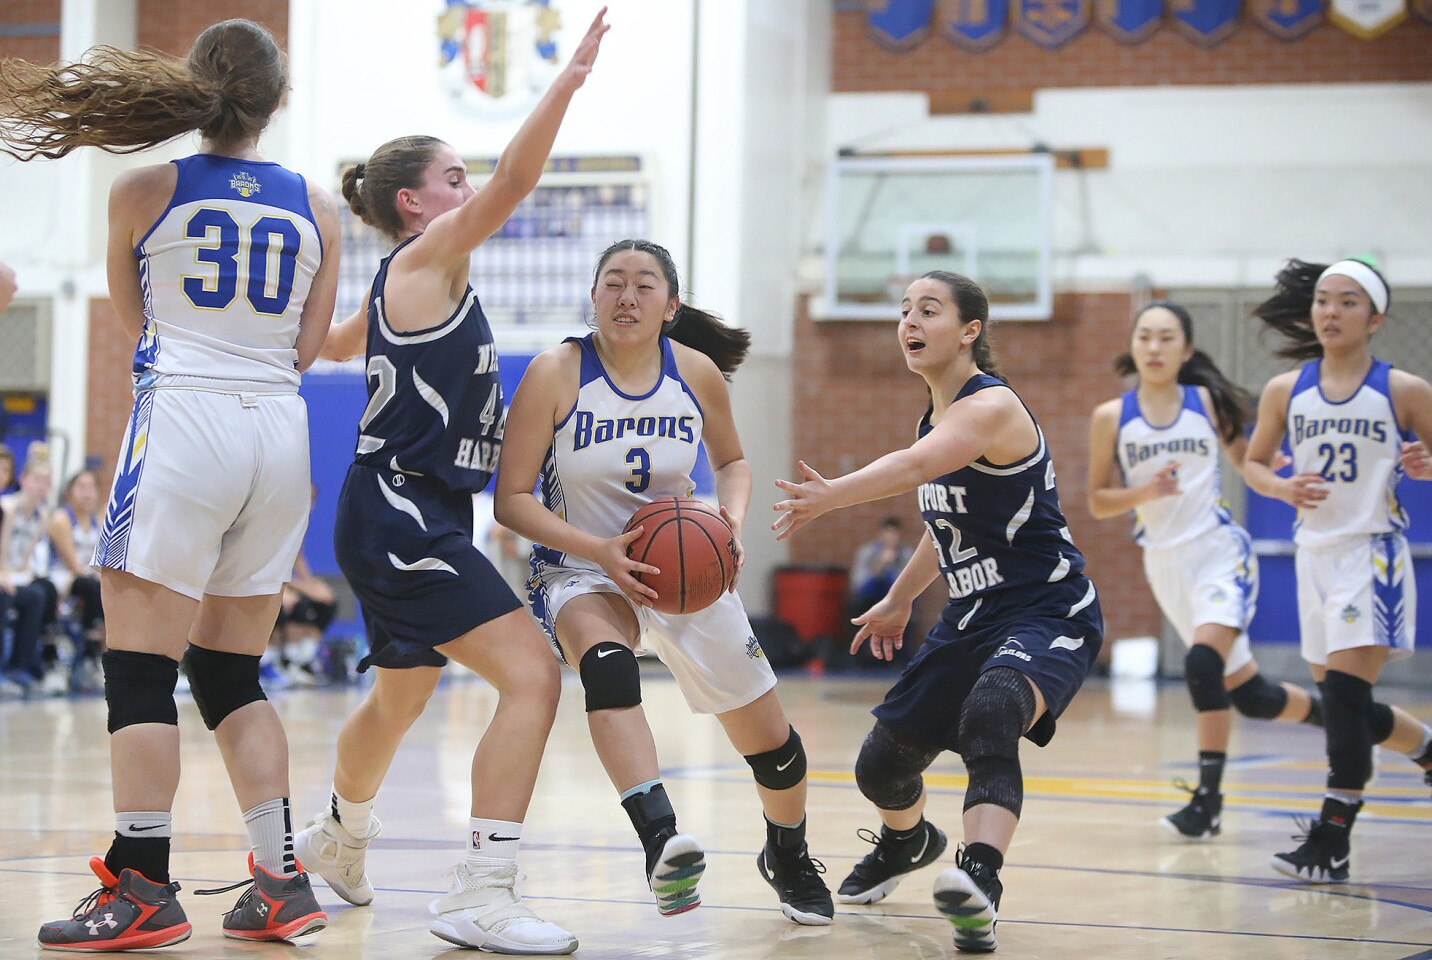 Photo Gallery: Newport Harbor vs. Fountain Valley in girls' basketball